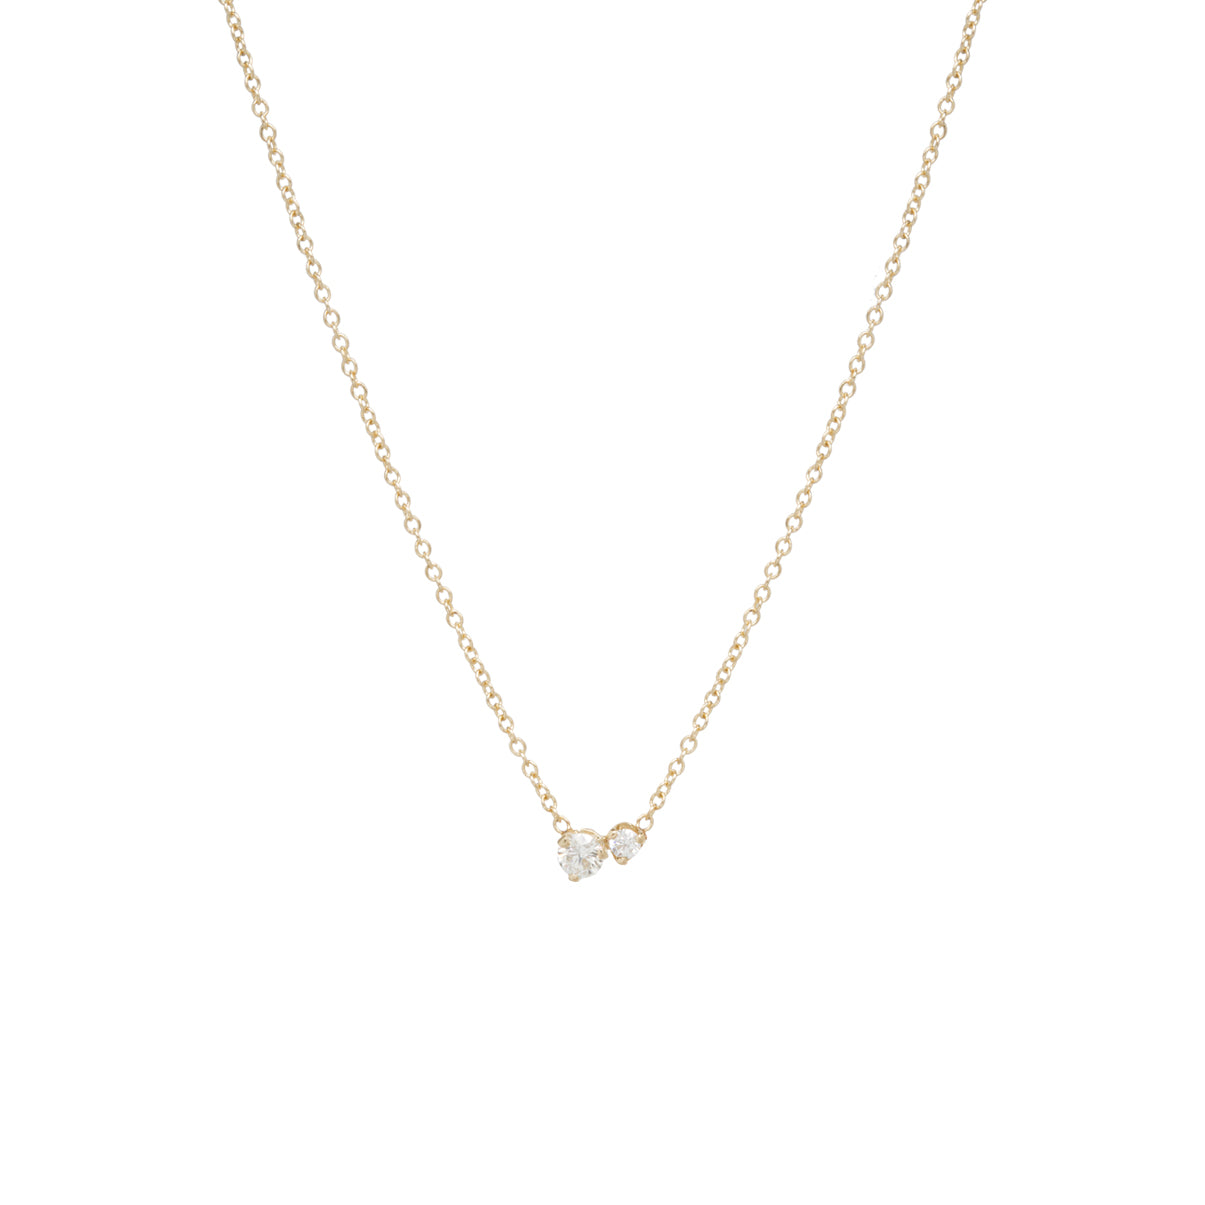 14k Large 2 Mixed Prong Diamond Necklace